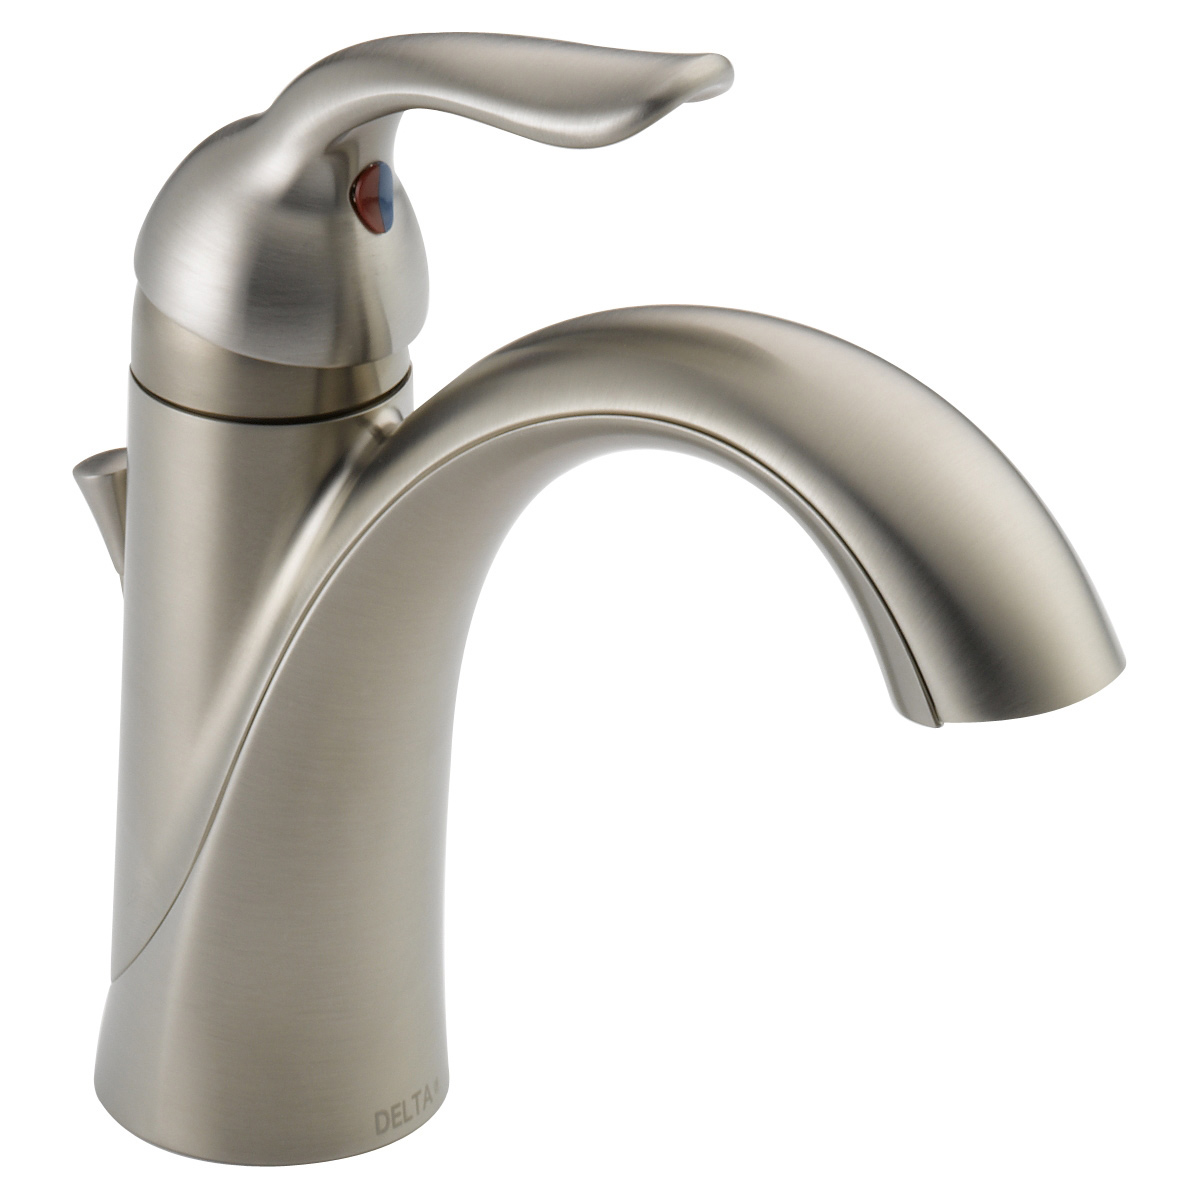 Delta 538 Mpu Dst Lahara Single Hole Bathroom Faucet With Pop Up Drain  Assembly And Optional Base Plate